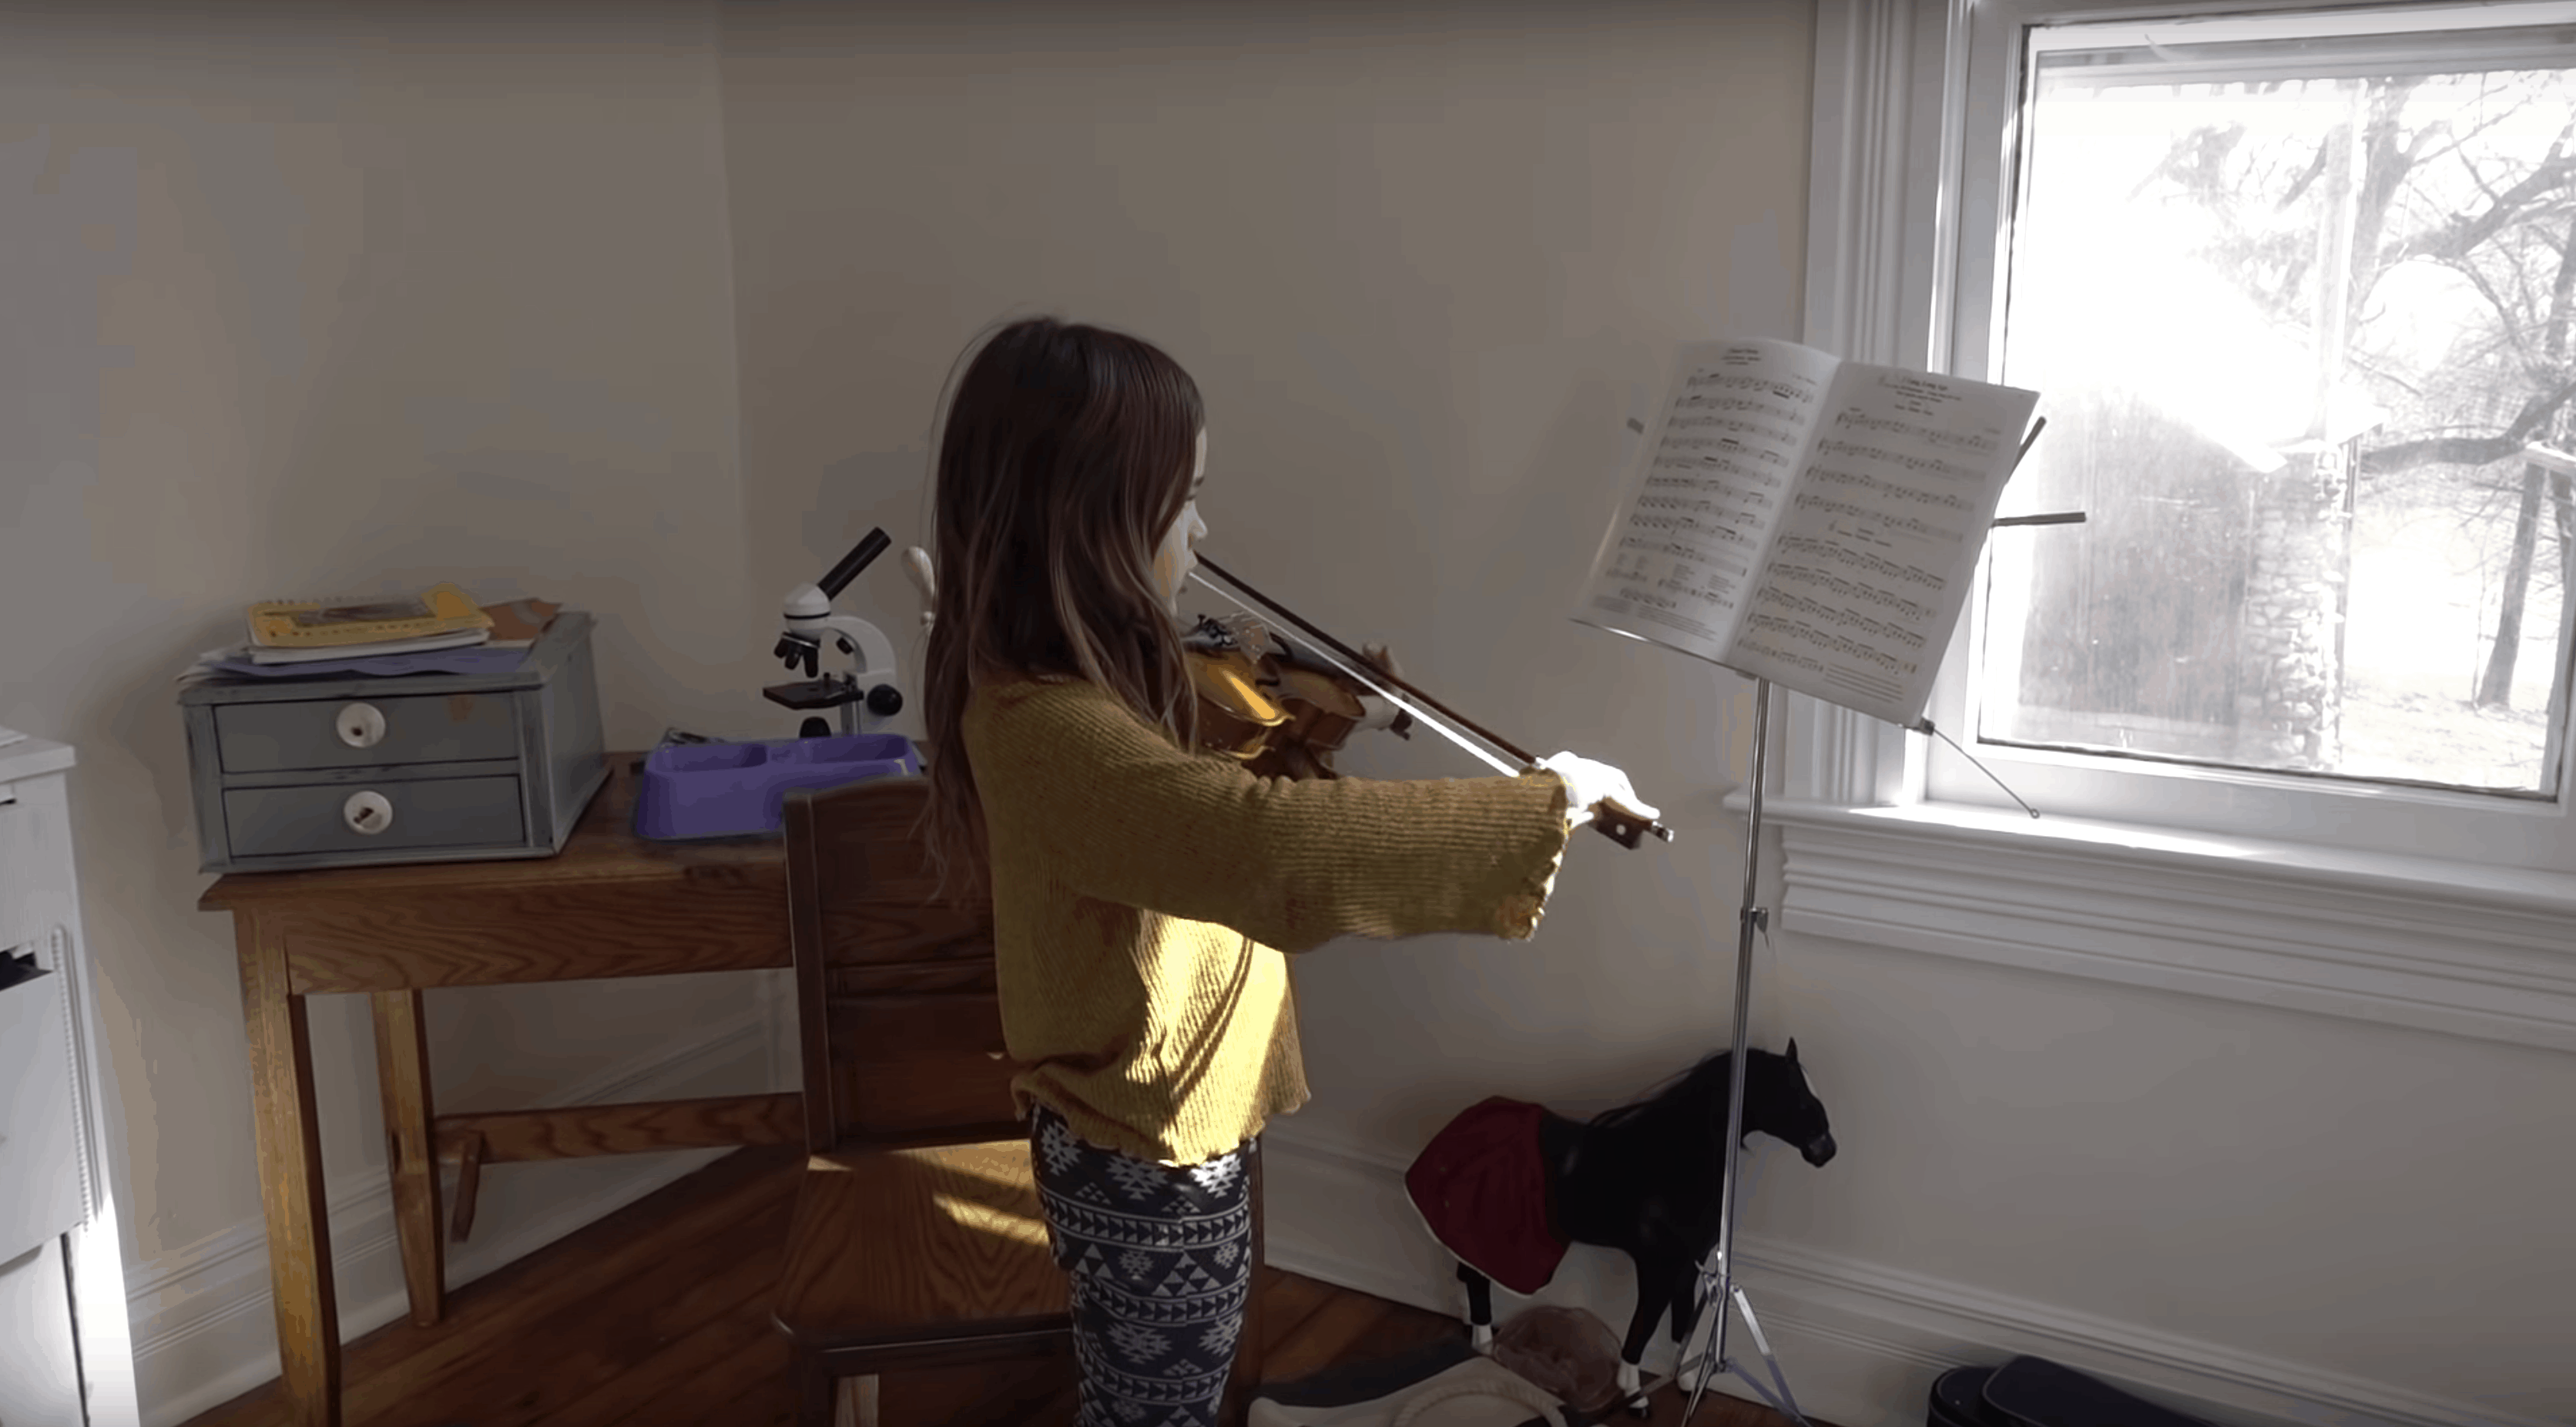 playing instruments - super fun activity for kids